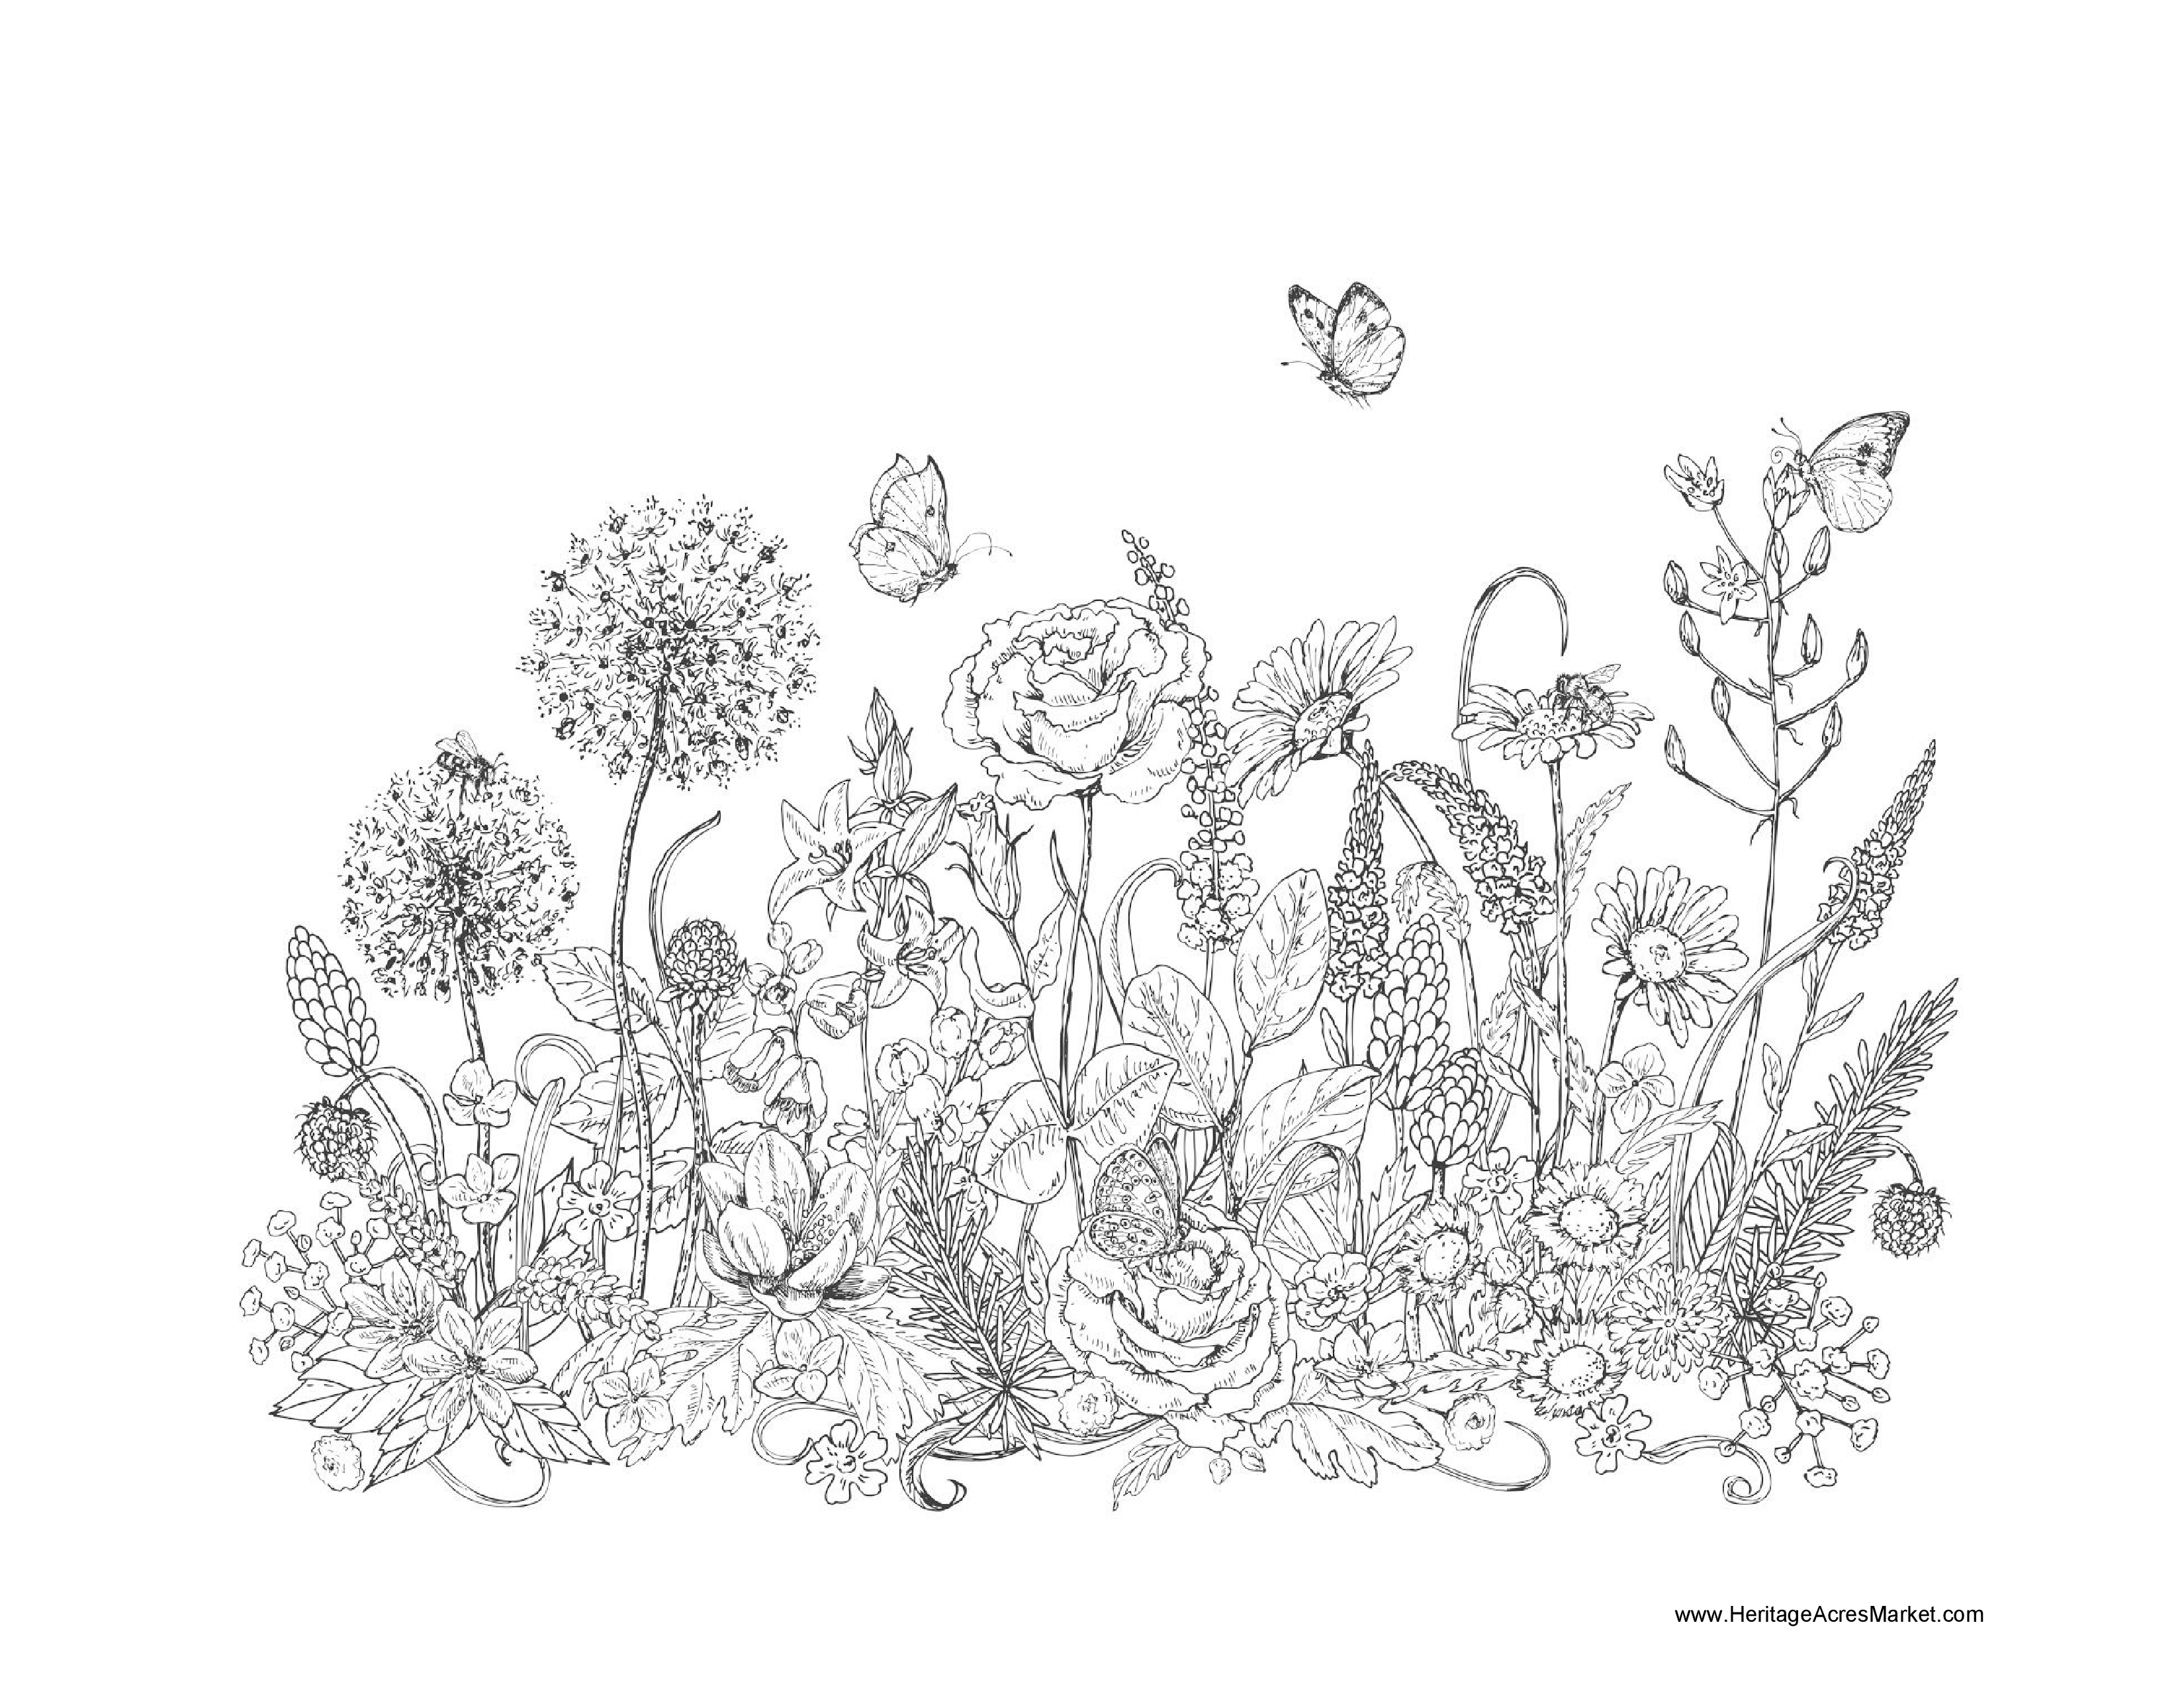 Wildflower Coloring Pages Png Free Wildflower Coloring Pages Png Transparent Images 84583 Pngio